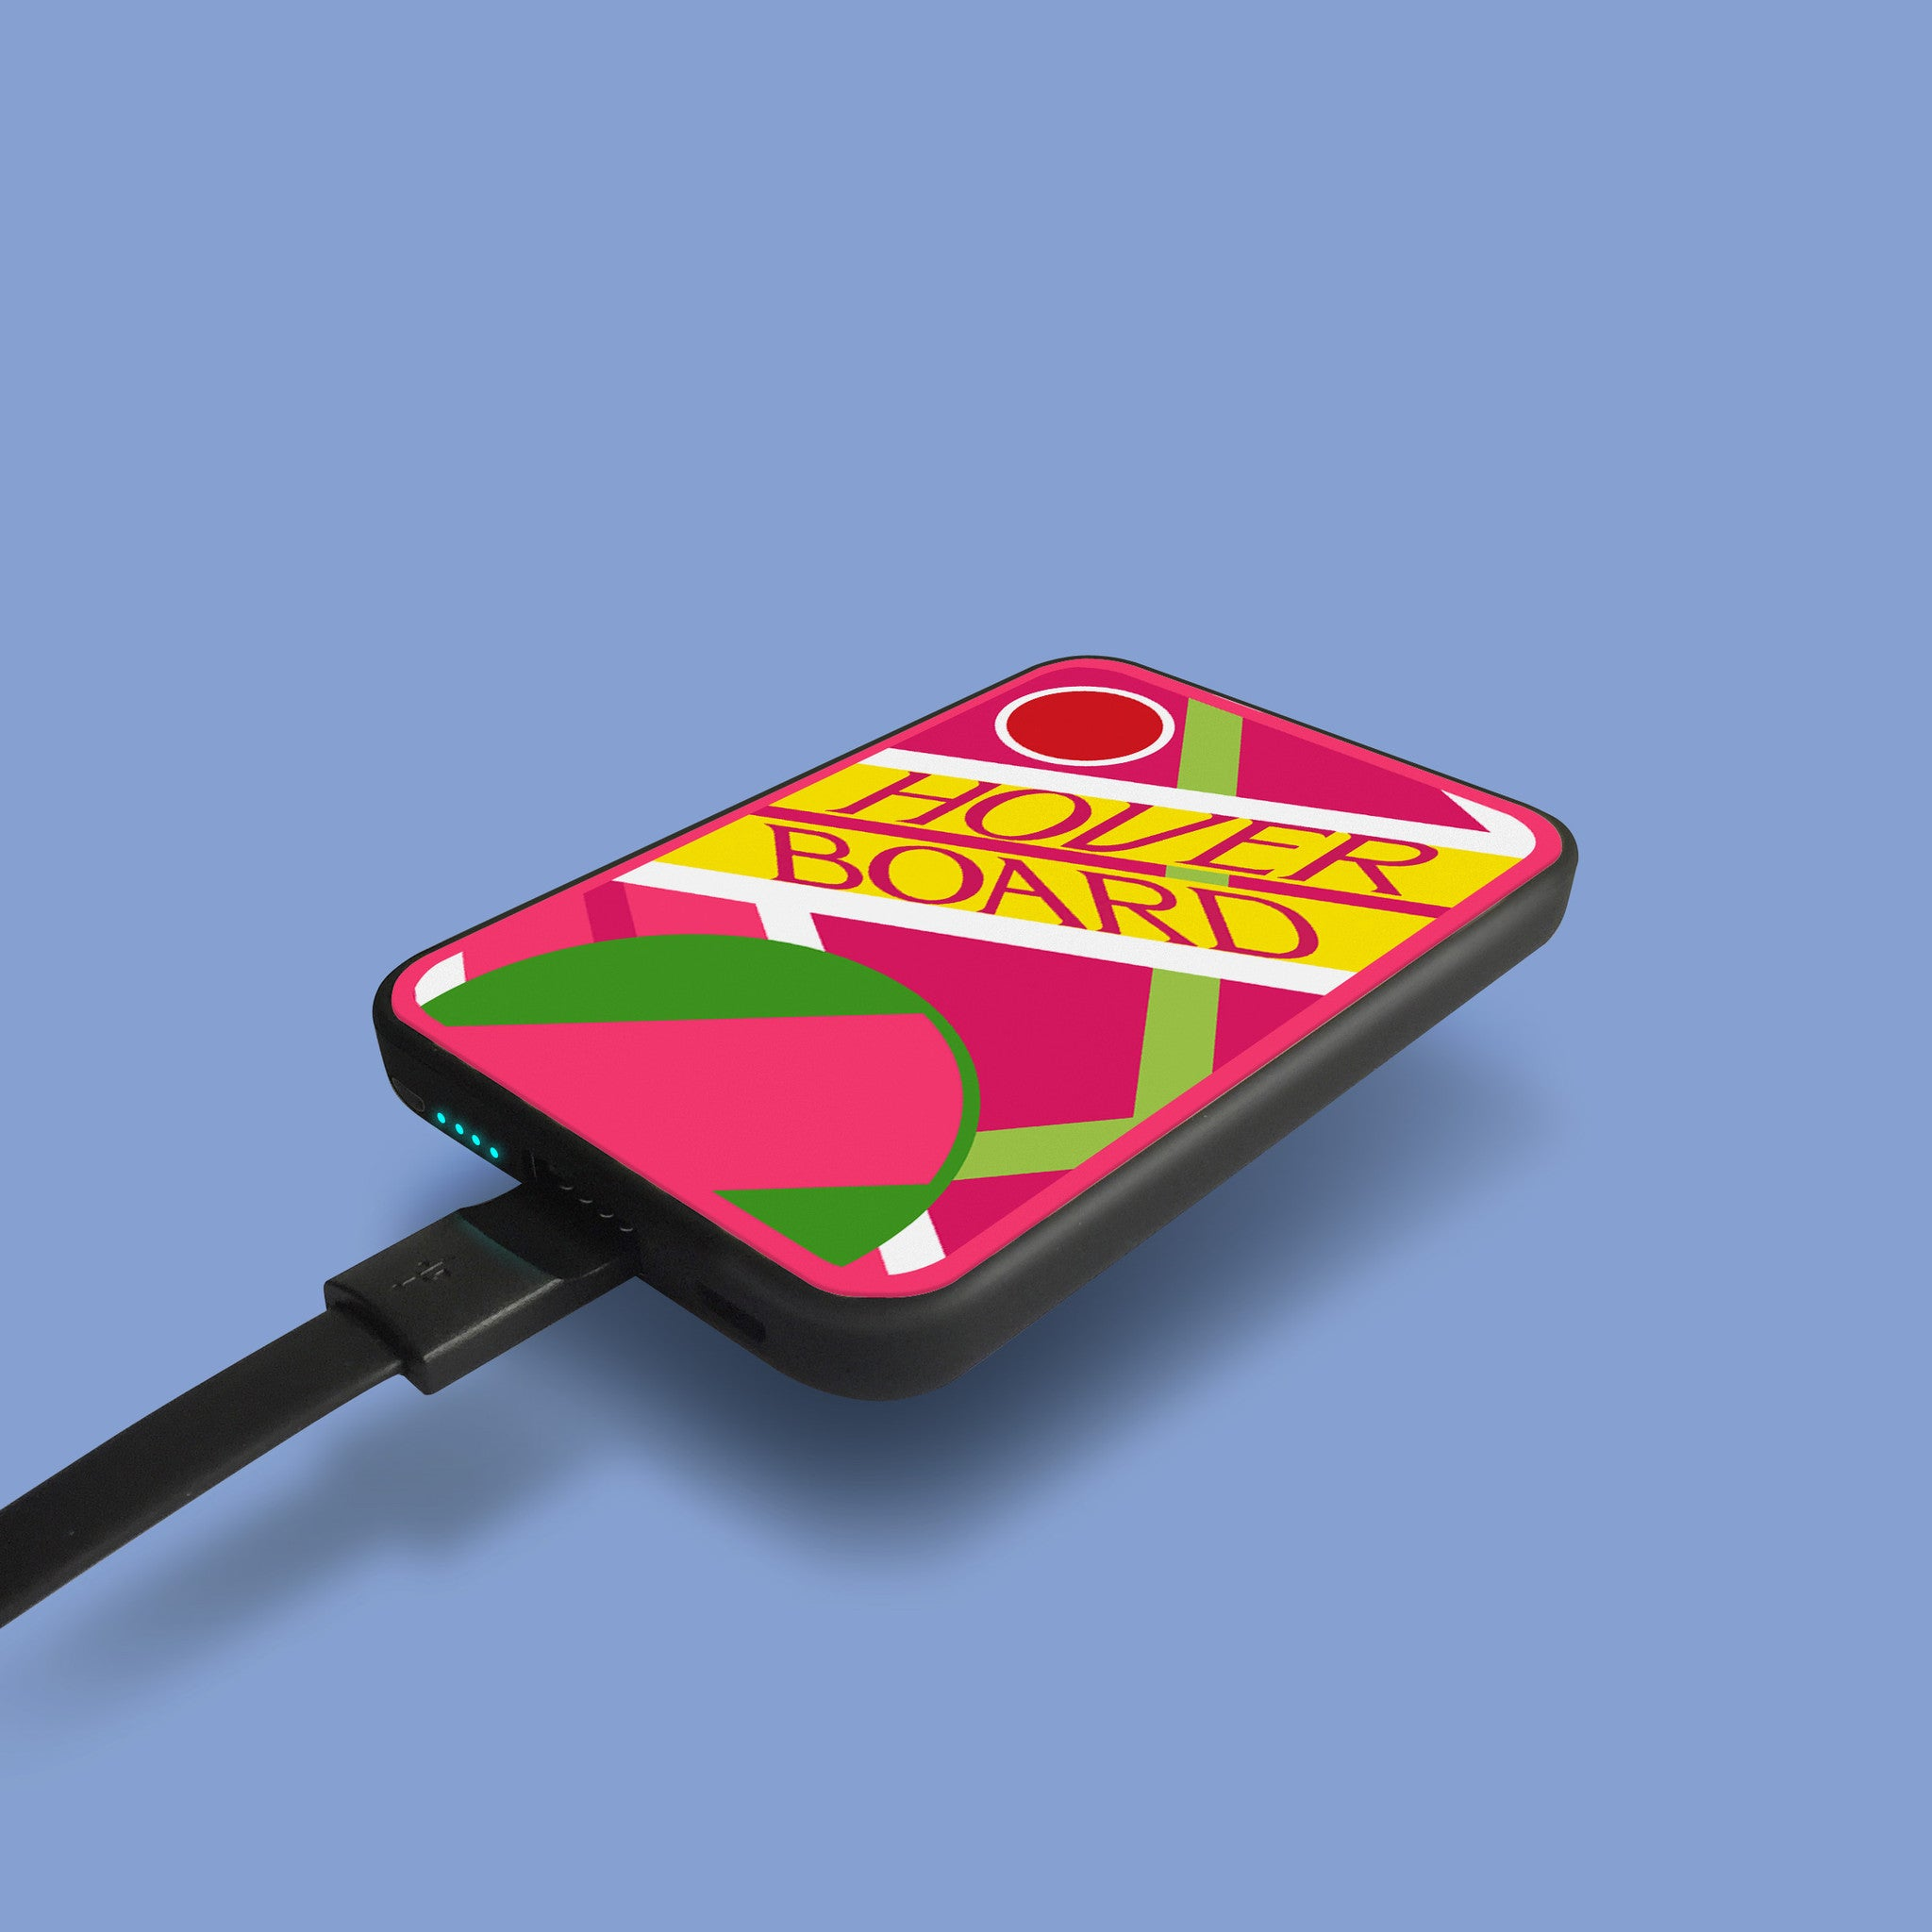 hover board back to the future marty mcfly mobile charger